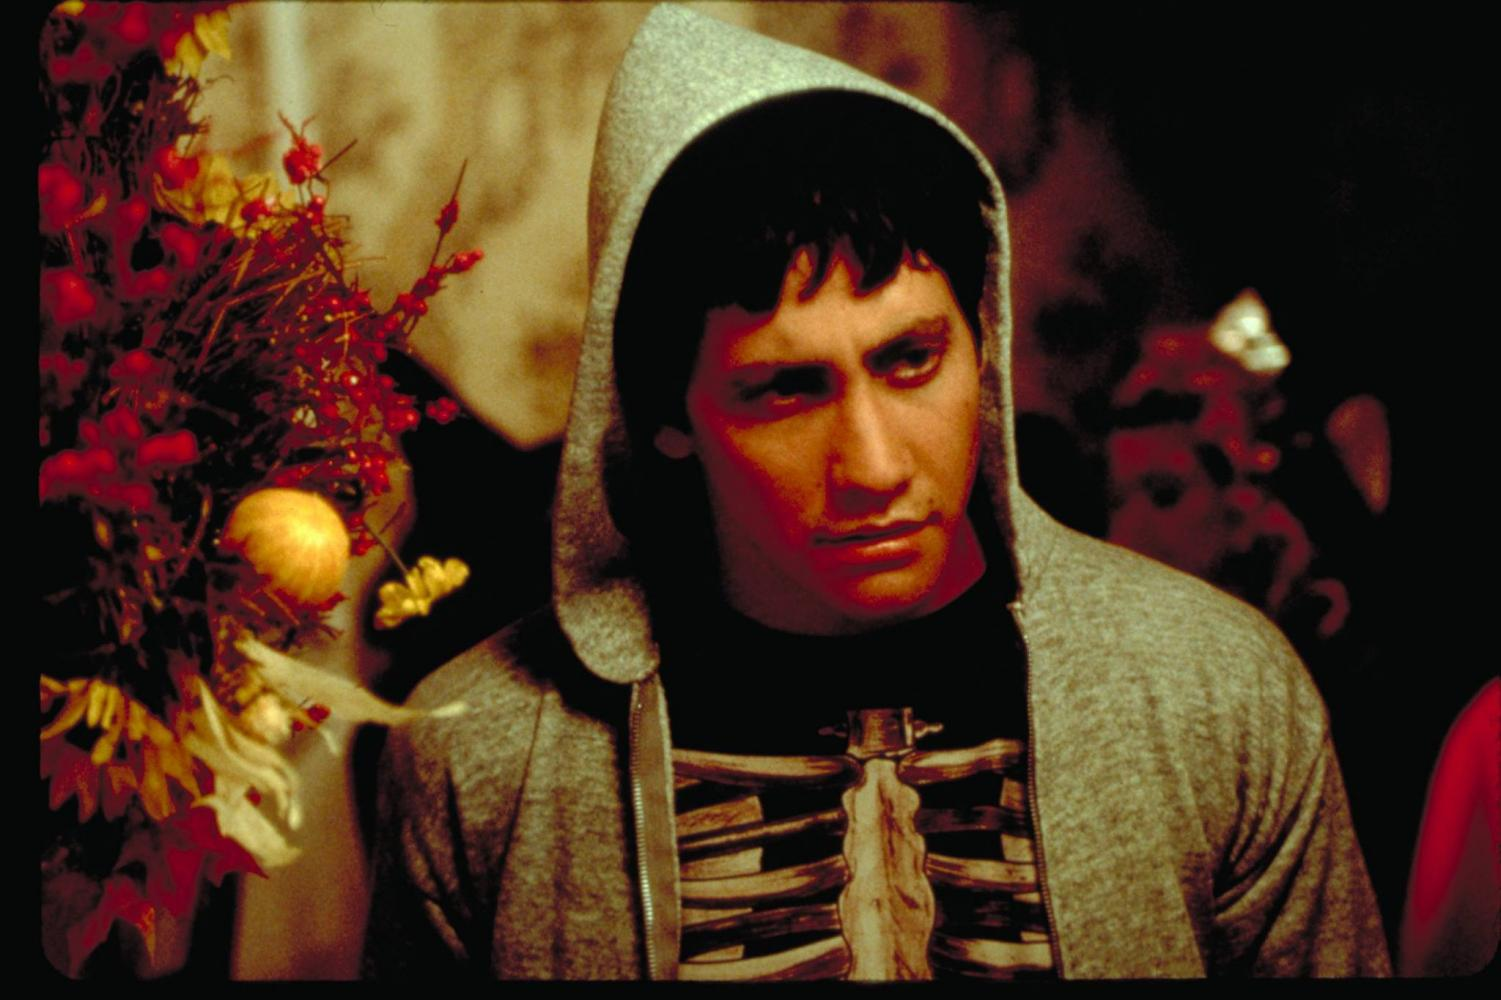 (Courtesy of Donnie Darko official Facebook page)